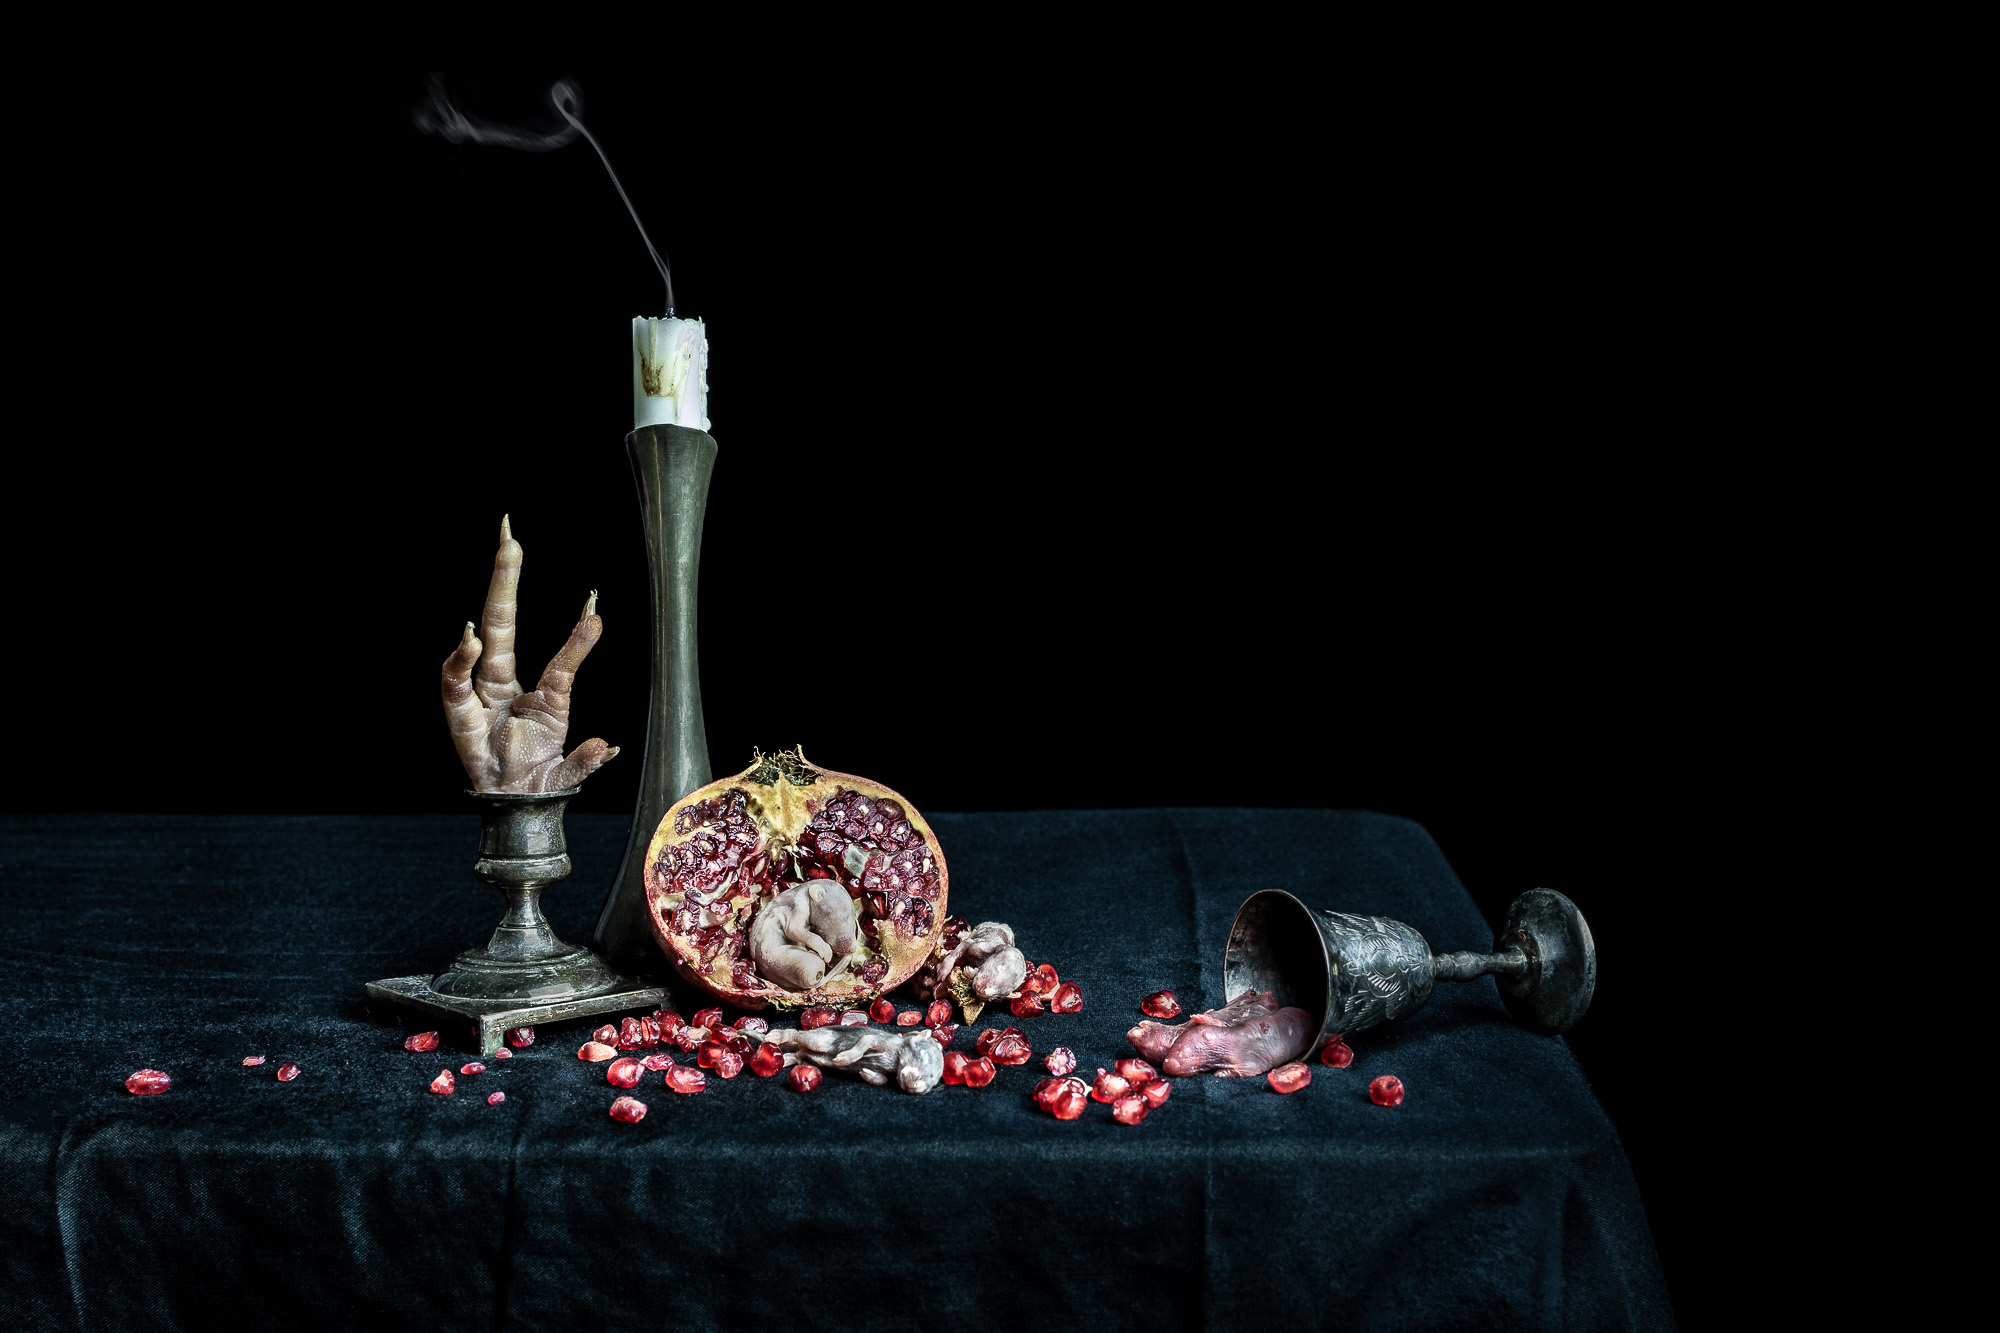 neal-auch-still-life-with-pomegranate.jpg